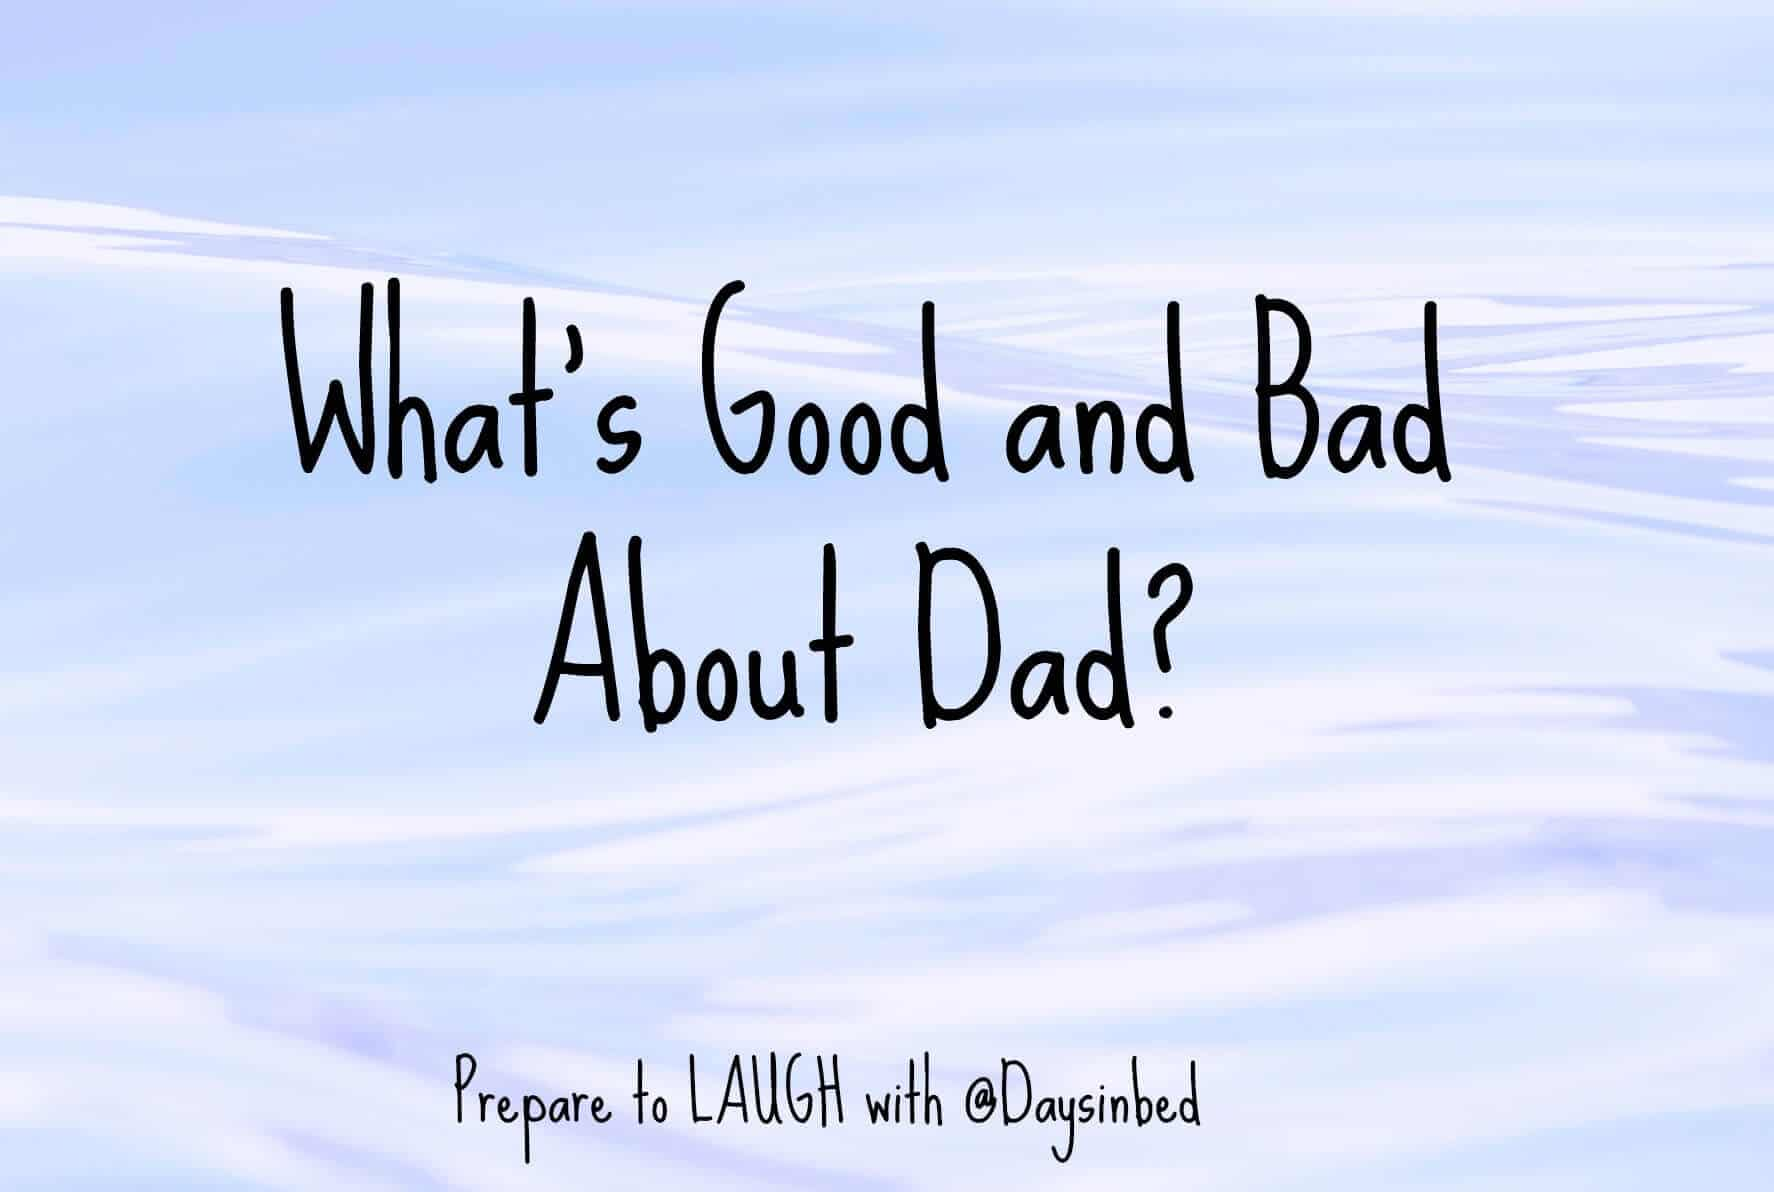 good and bad about dad